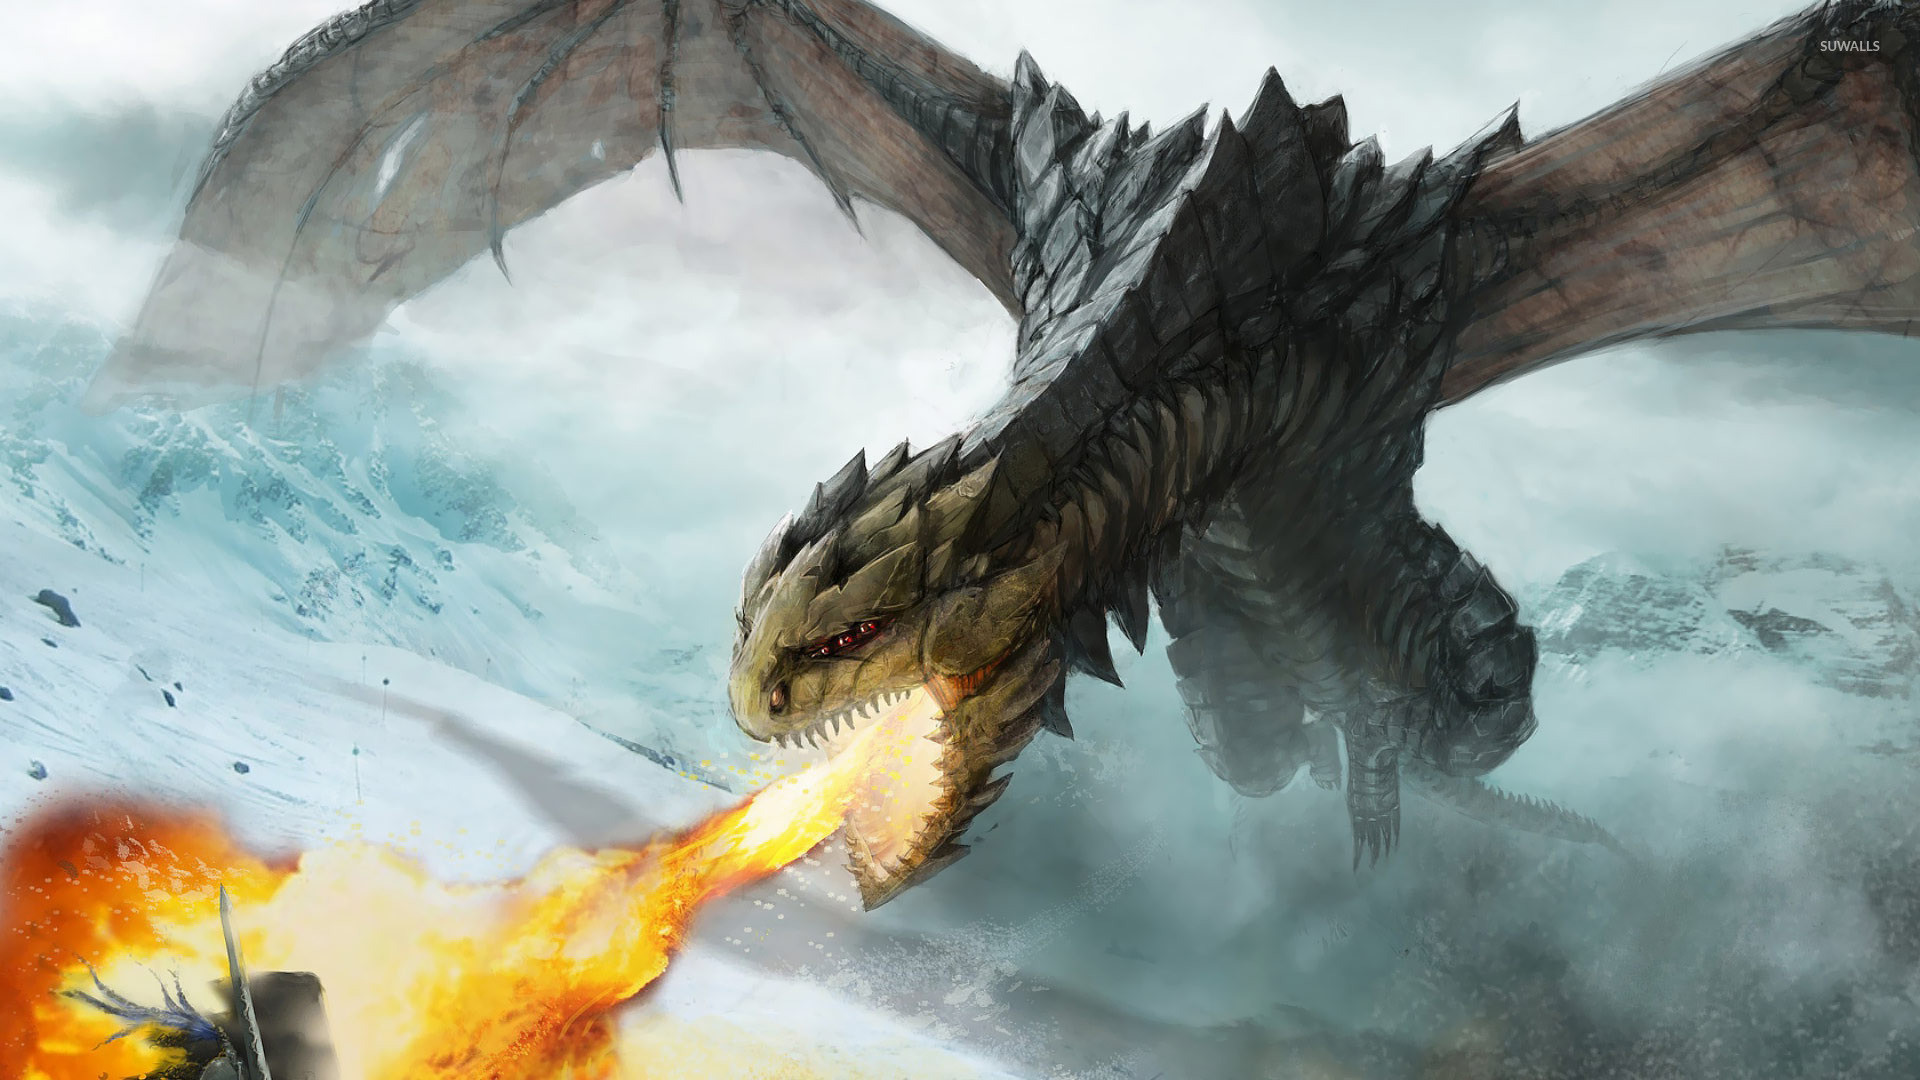 Fire dragon wallpaper 67 images - Dragon backgrounds 1920x1080 ...